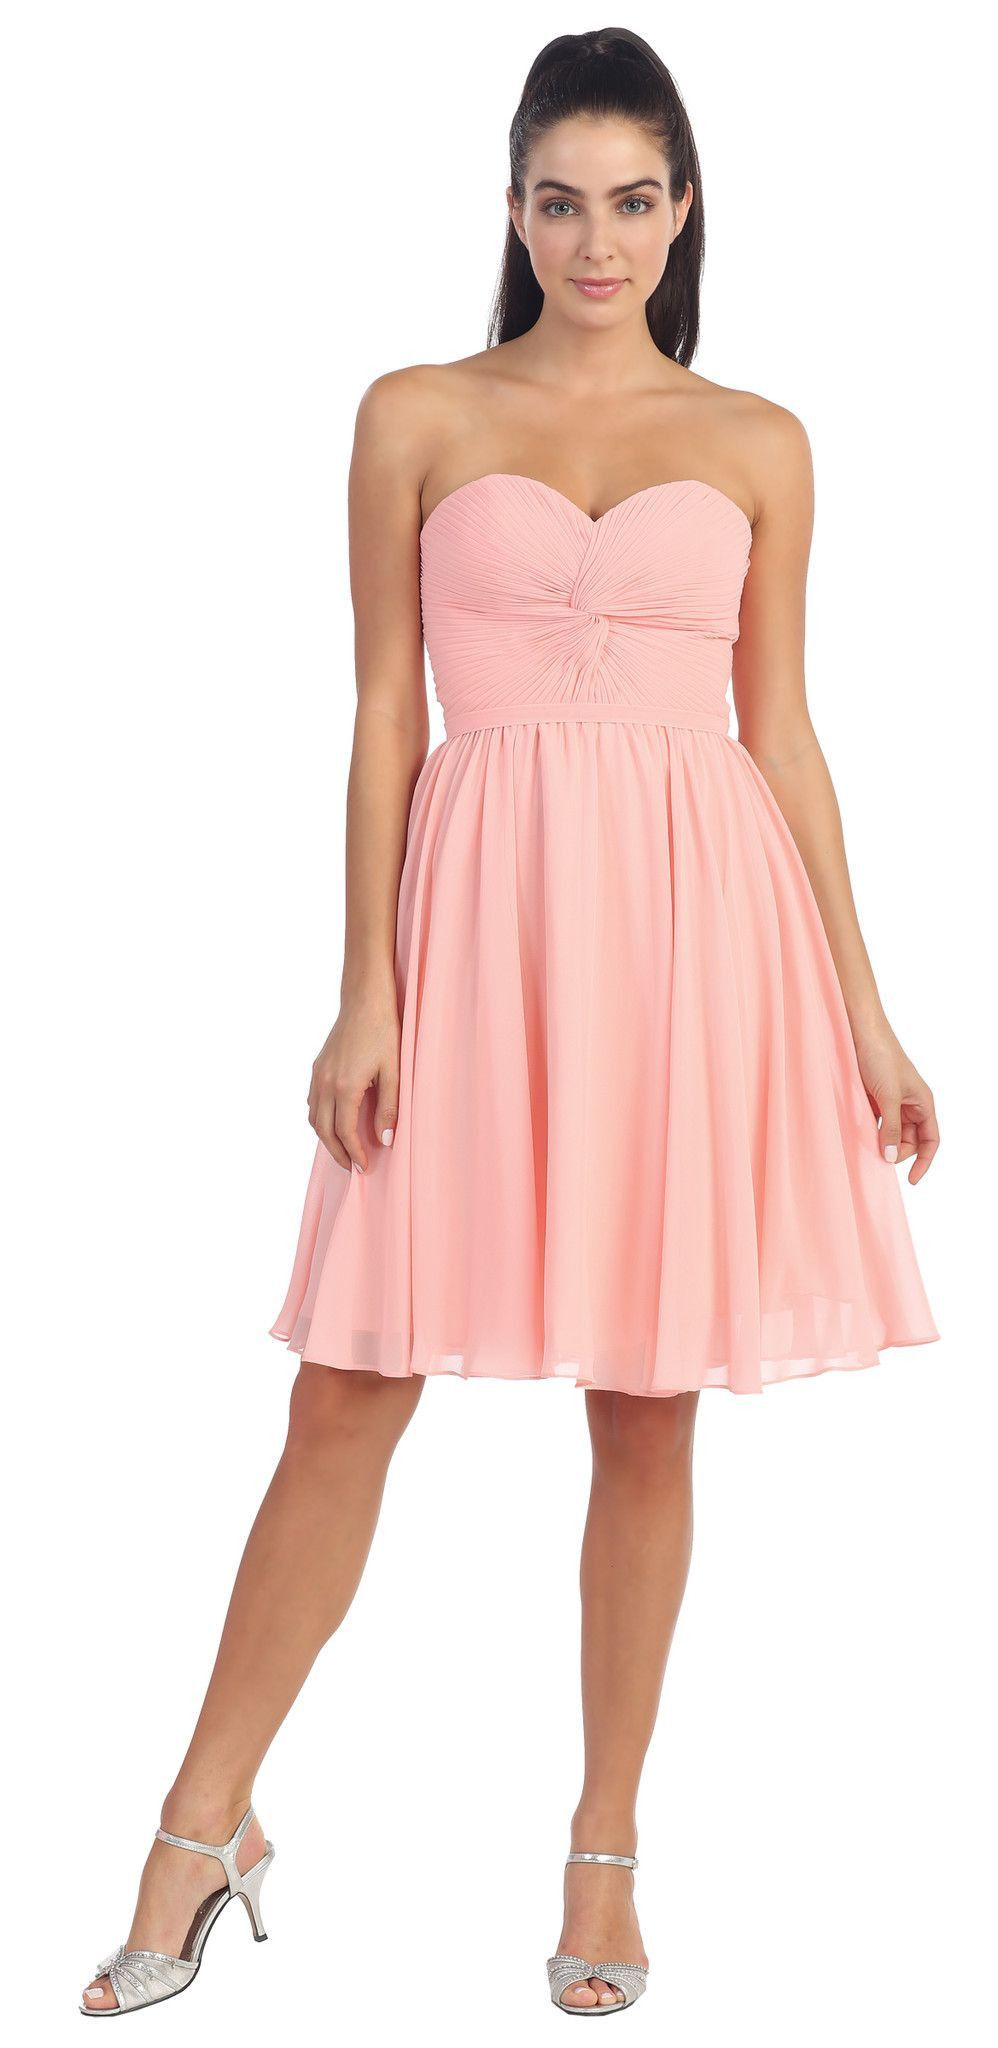 Elegant simple short blush strapless bridesmaid dress wedding